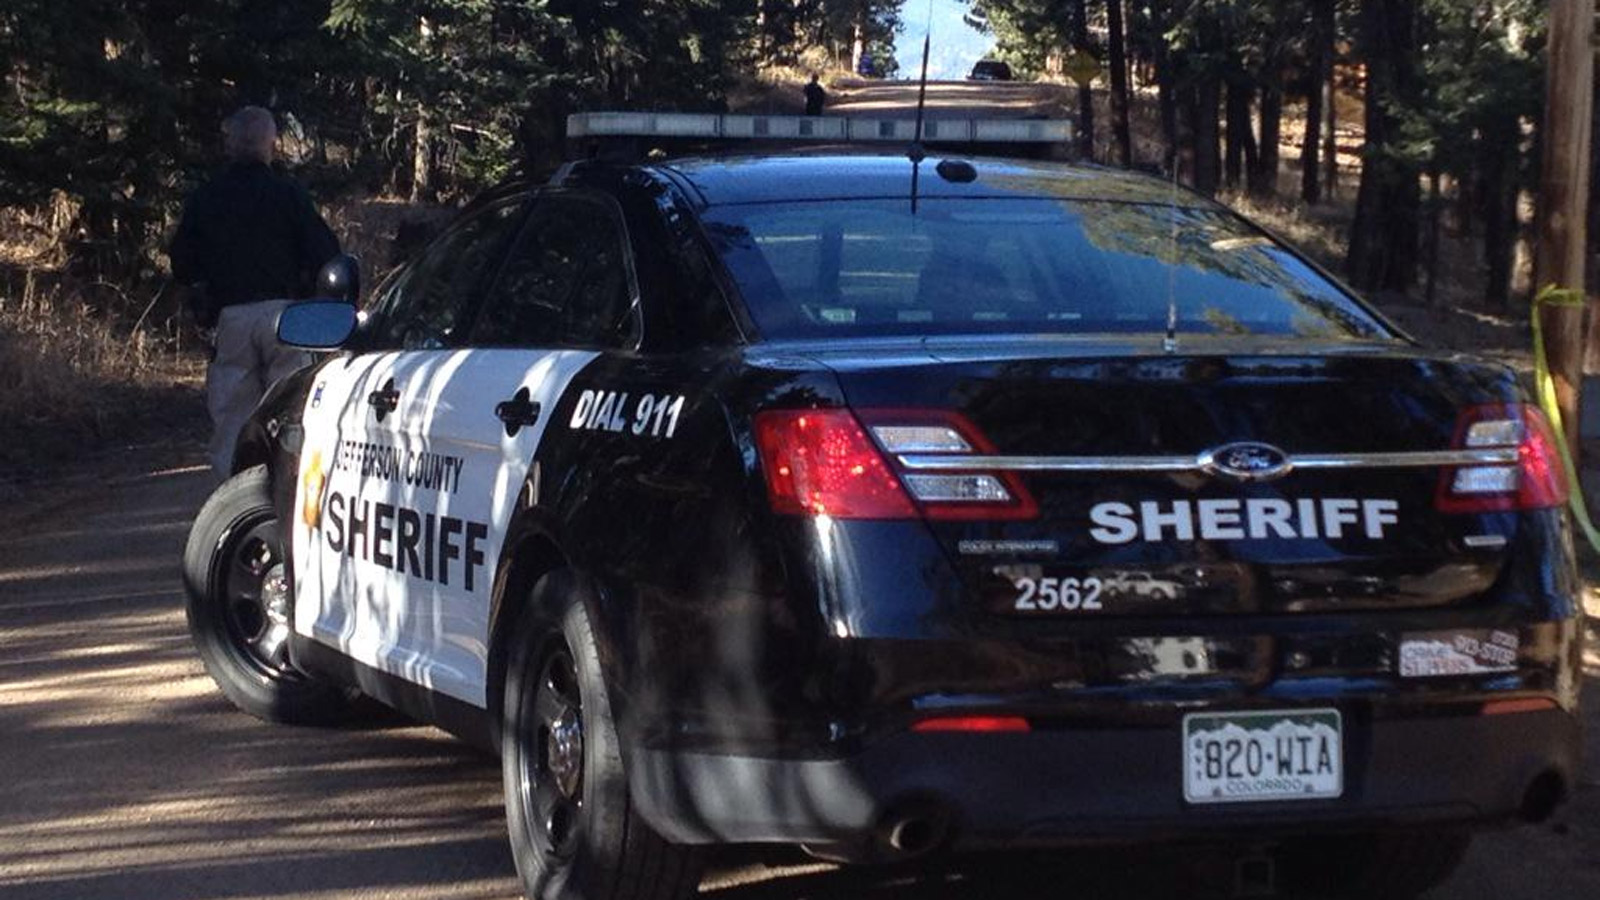 A Jeffco Sheriff's deputy near the home invasion where an intruder was shot and killed (credit: CBS)